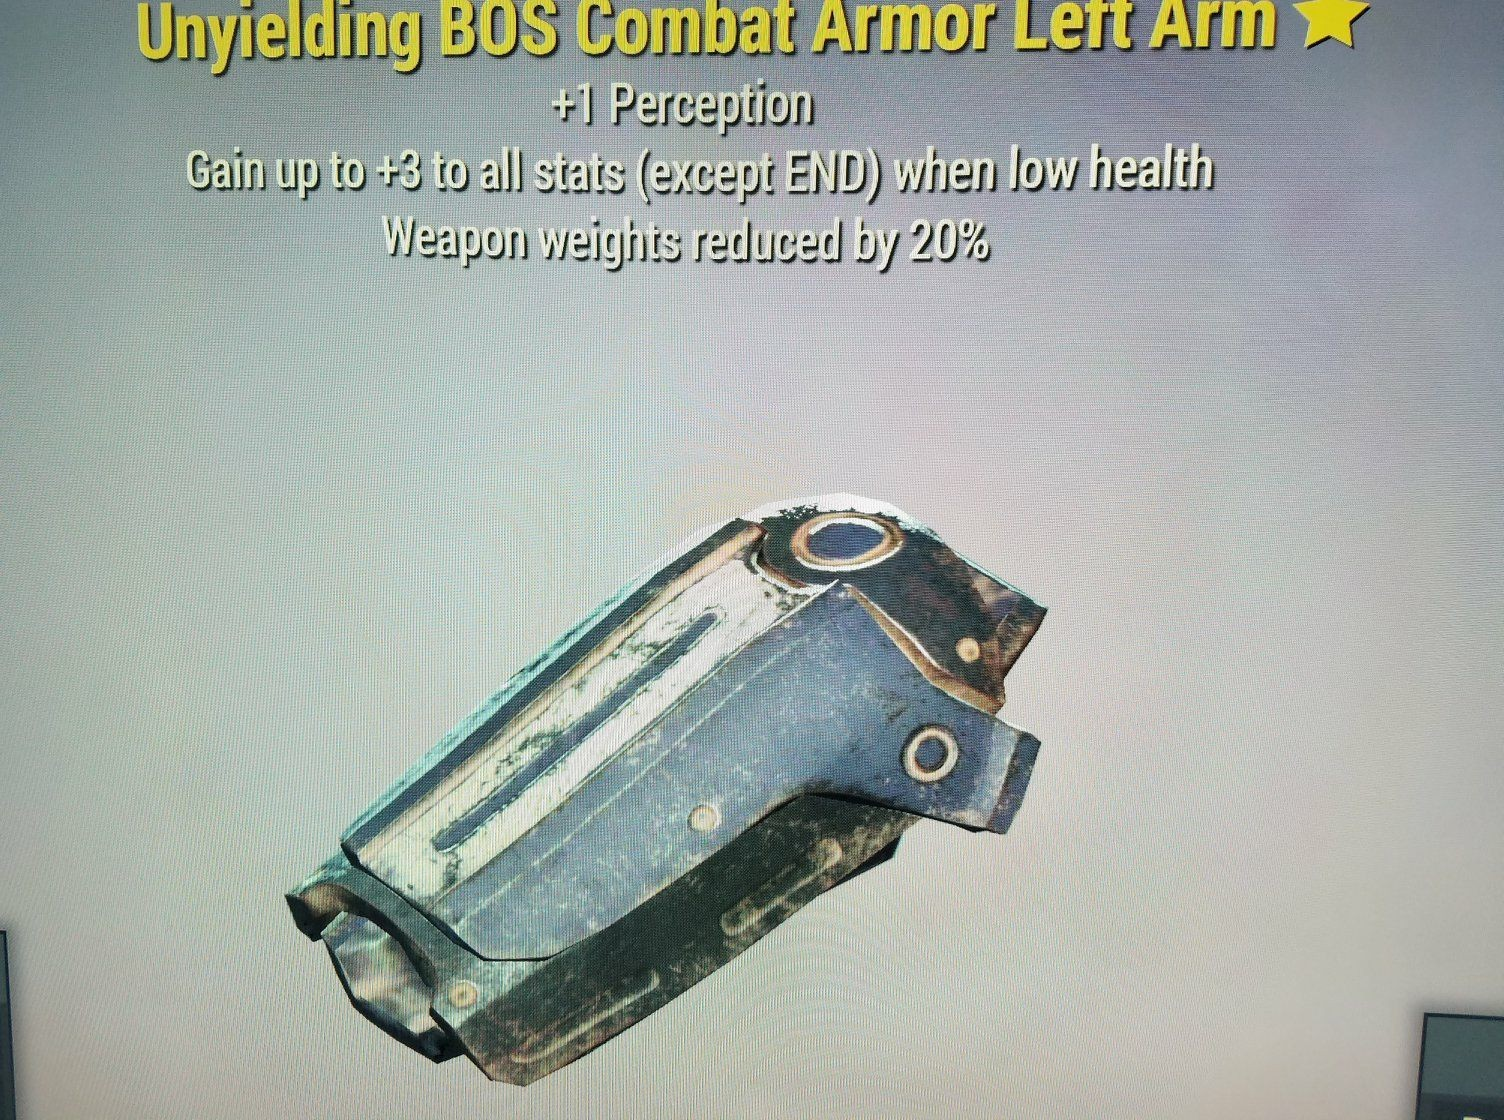 WW Reduction Unyielding BOS Combat Armor Left Arm